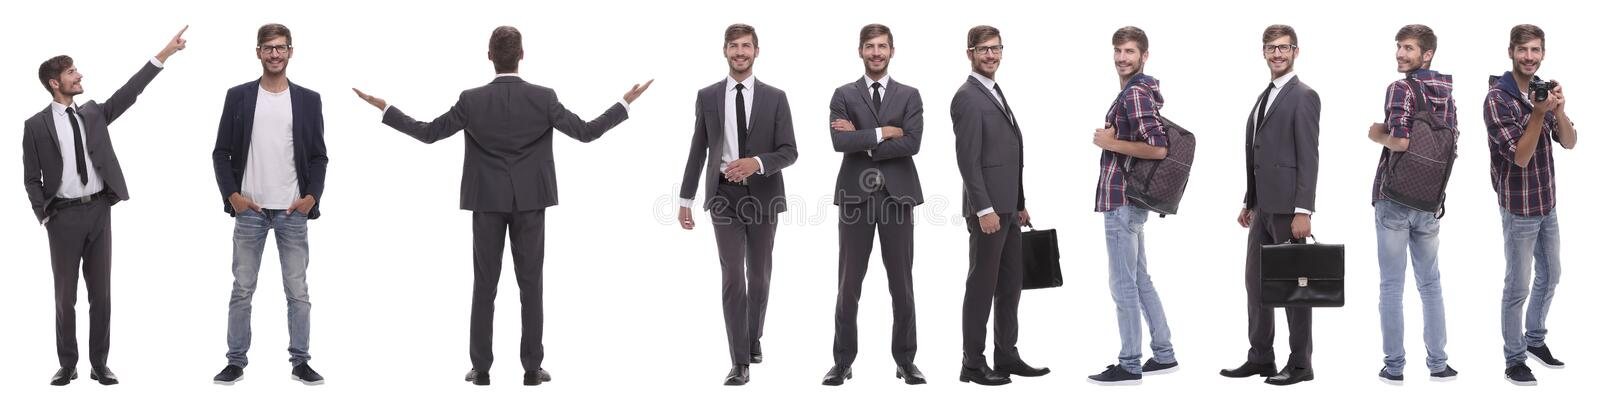 Panoramic collage of self-motivated young man .isolated on white royalty free stock photography